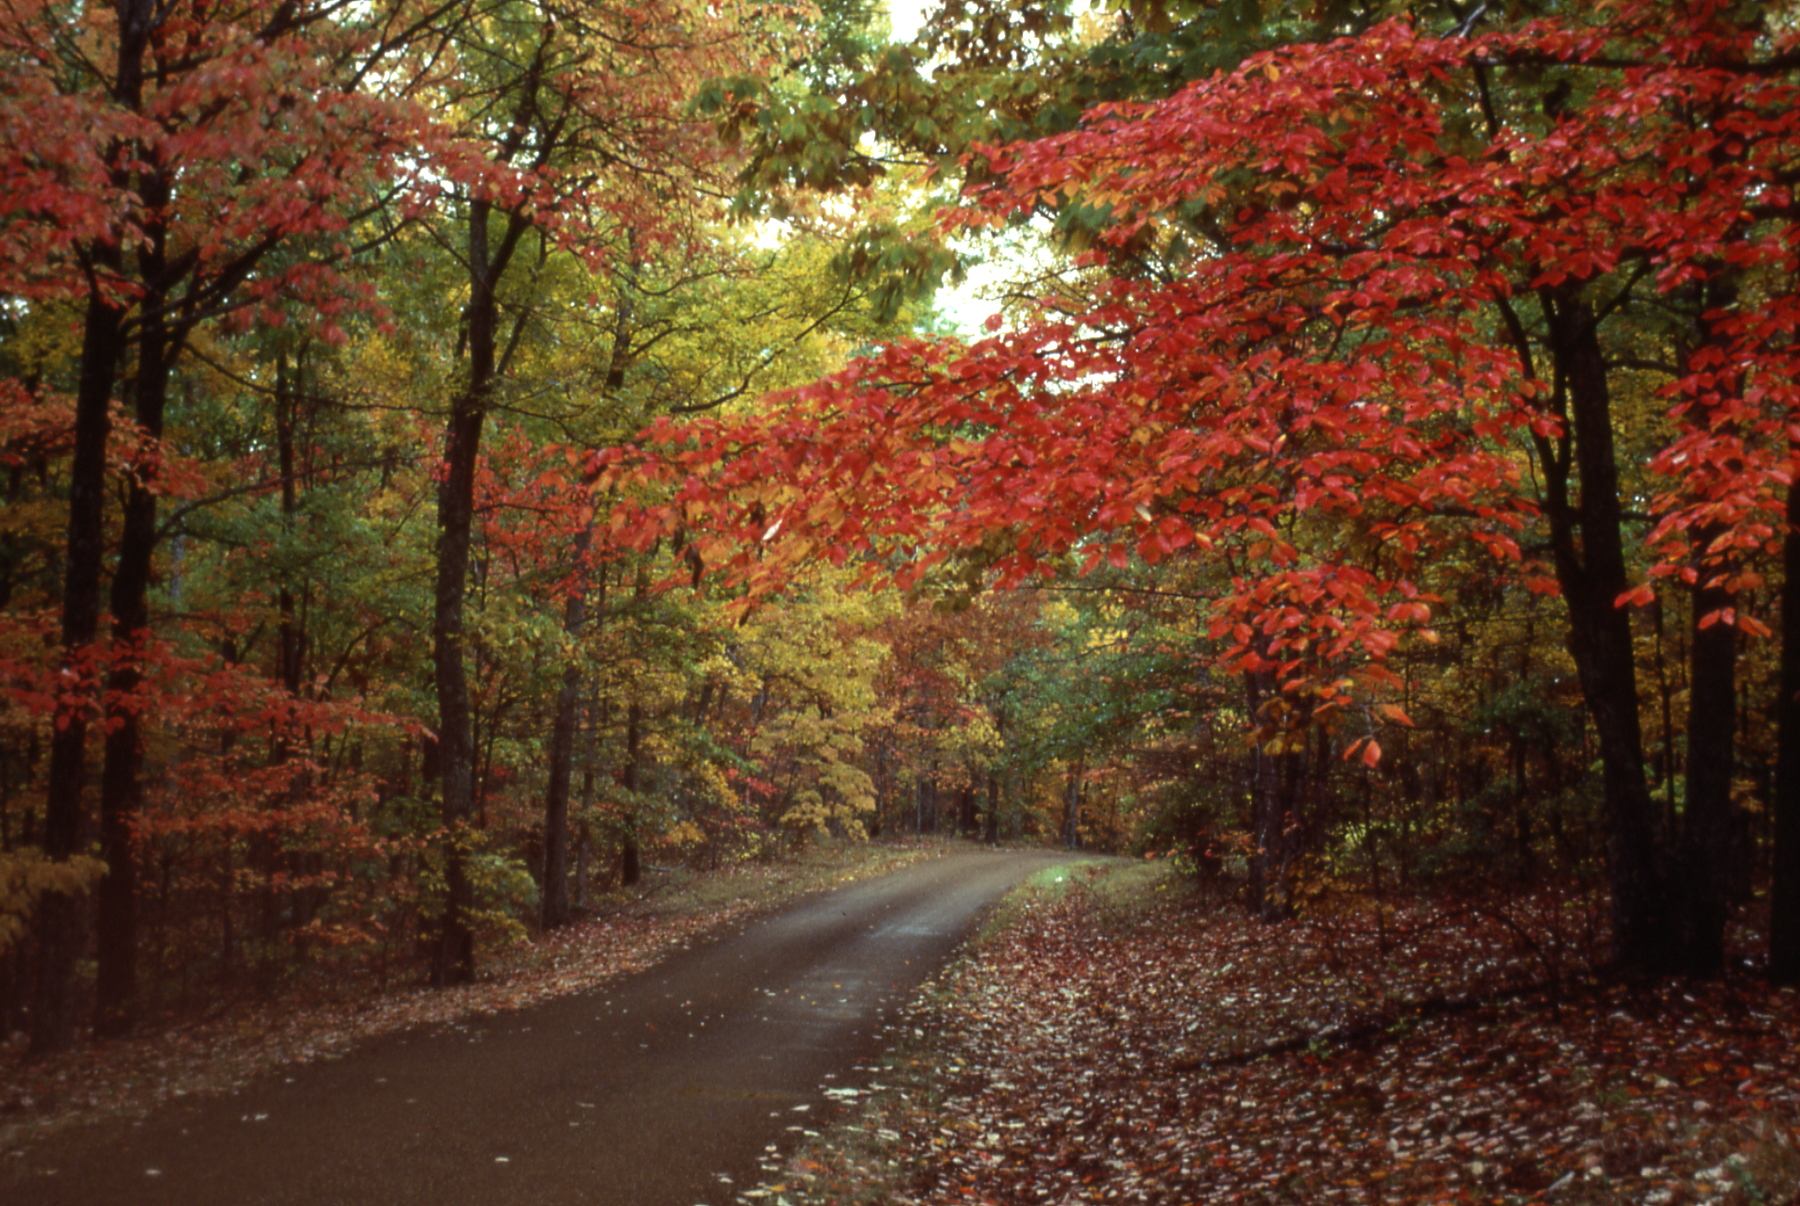 Natchez Trace Parkway, a scenic drive to see fall foliage. Photo by NPS